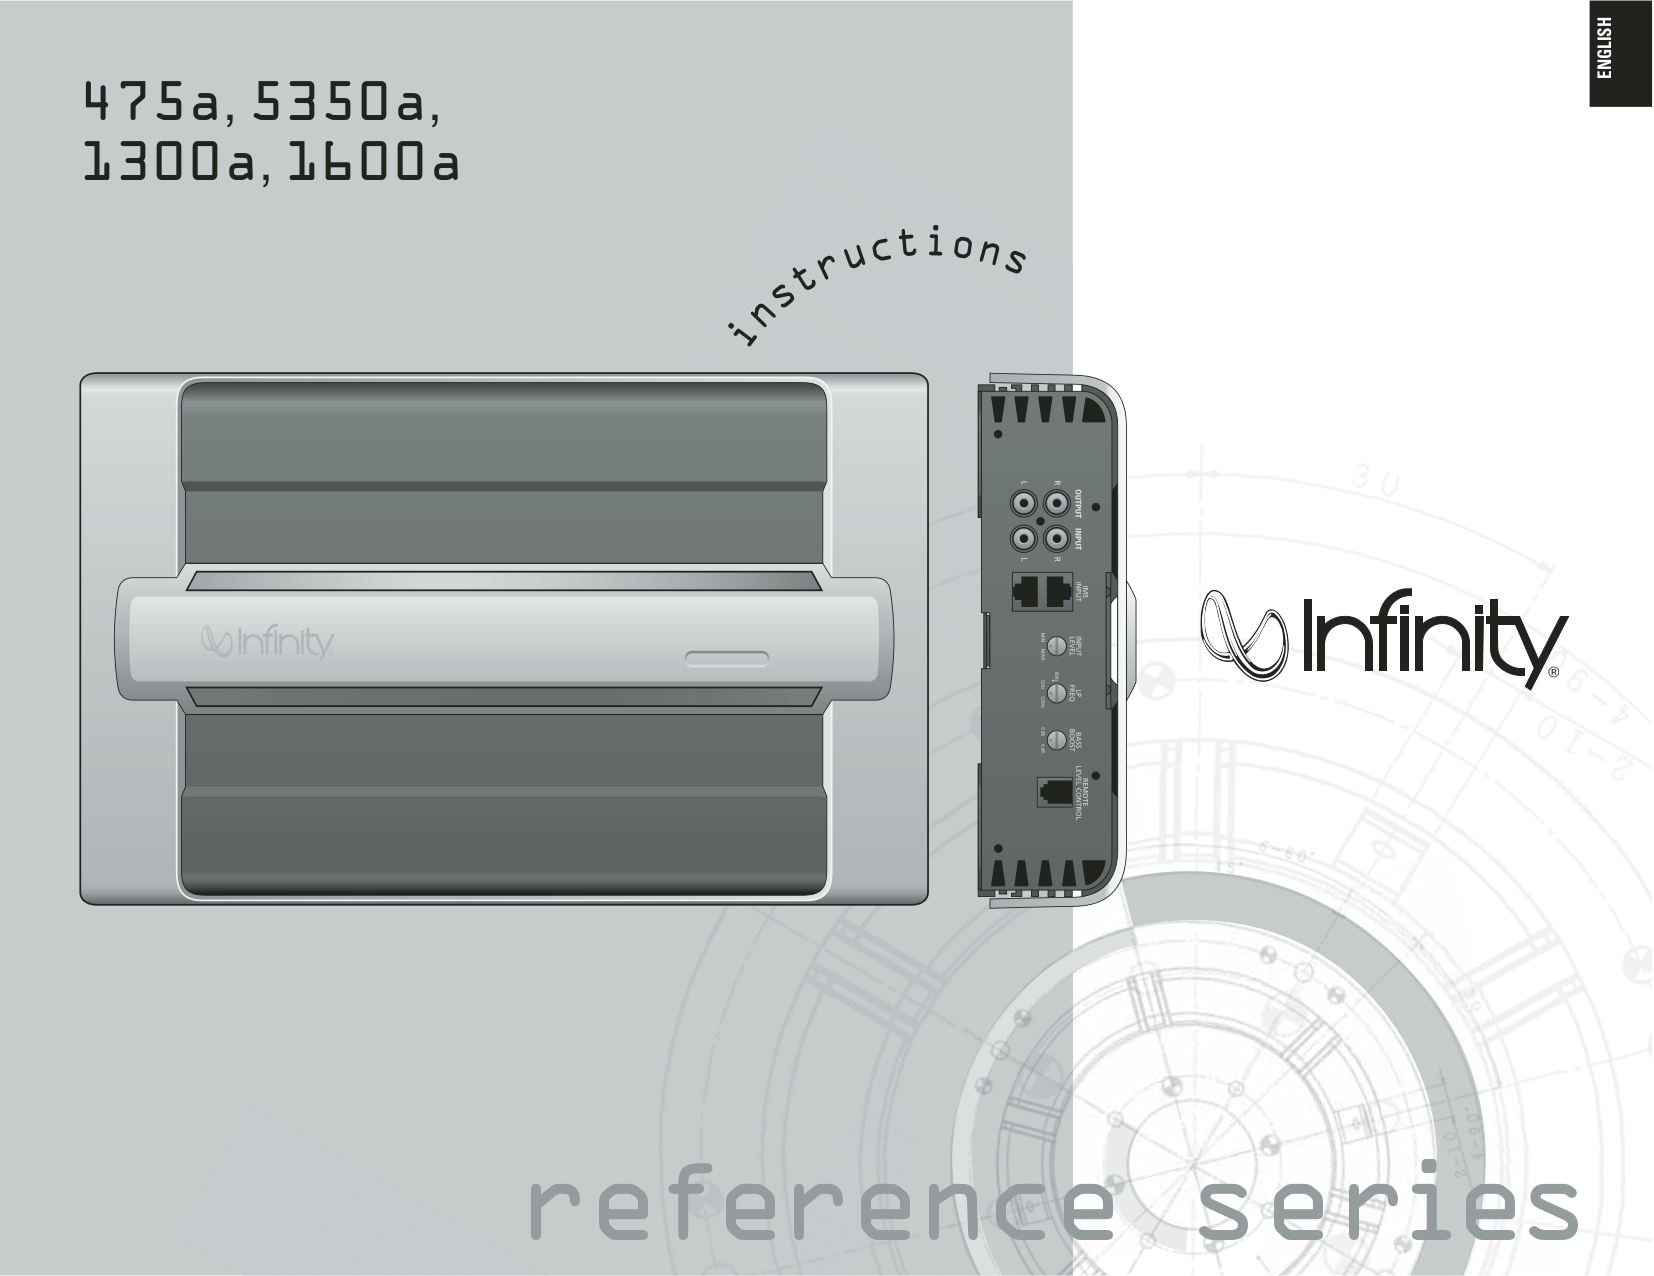 pdf for Infinity Car Amplifier Reference 1600A manual